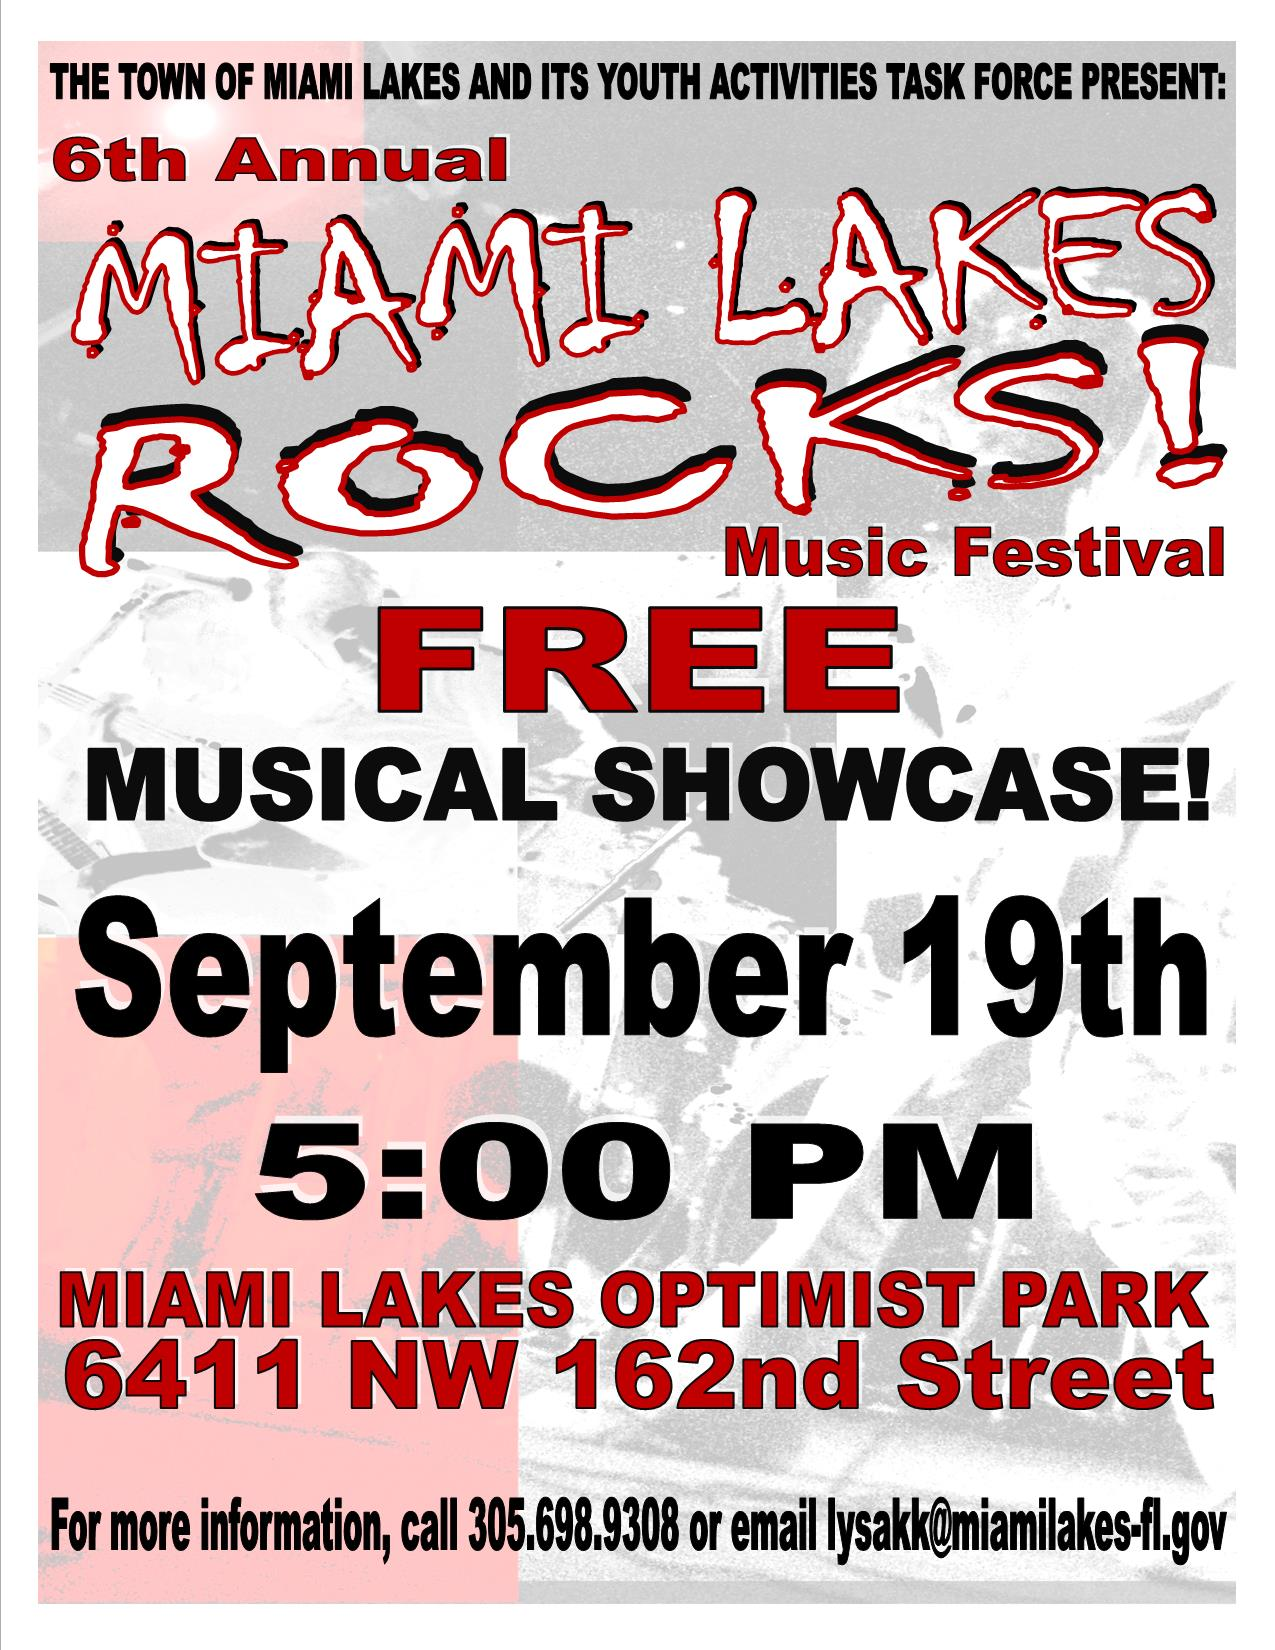 Miami Lakes Rocks 2015 Flyer